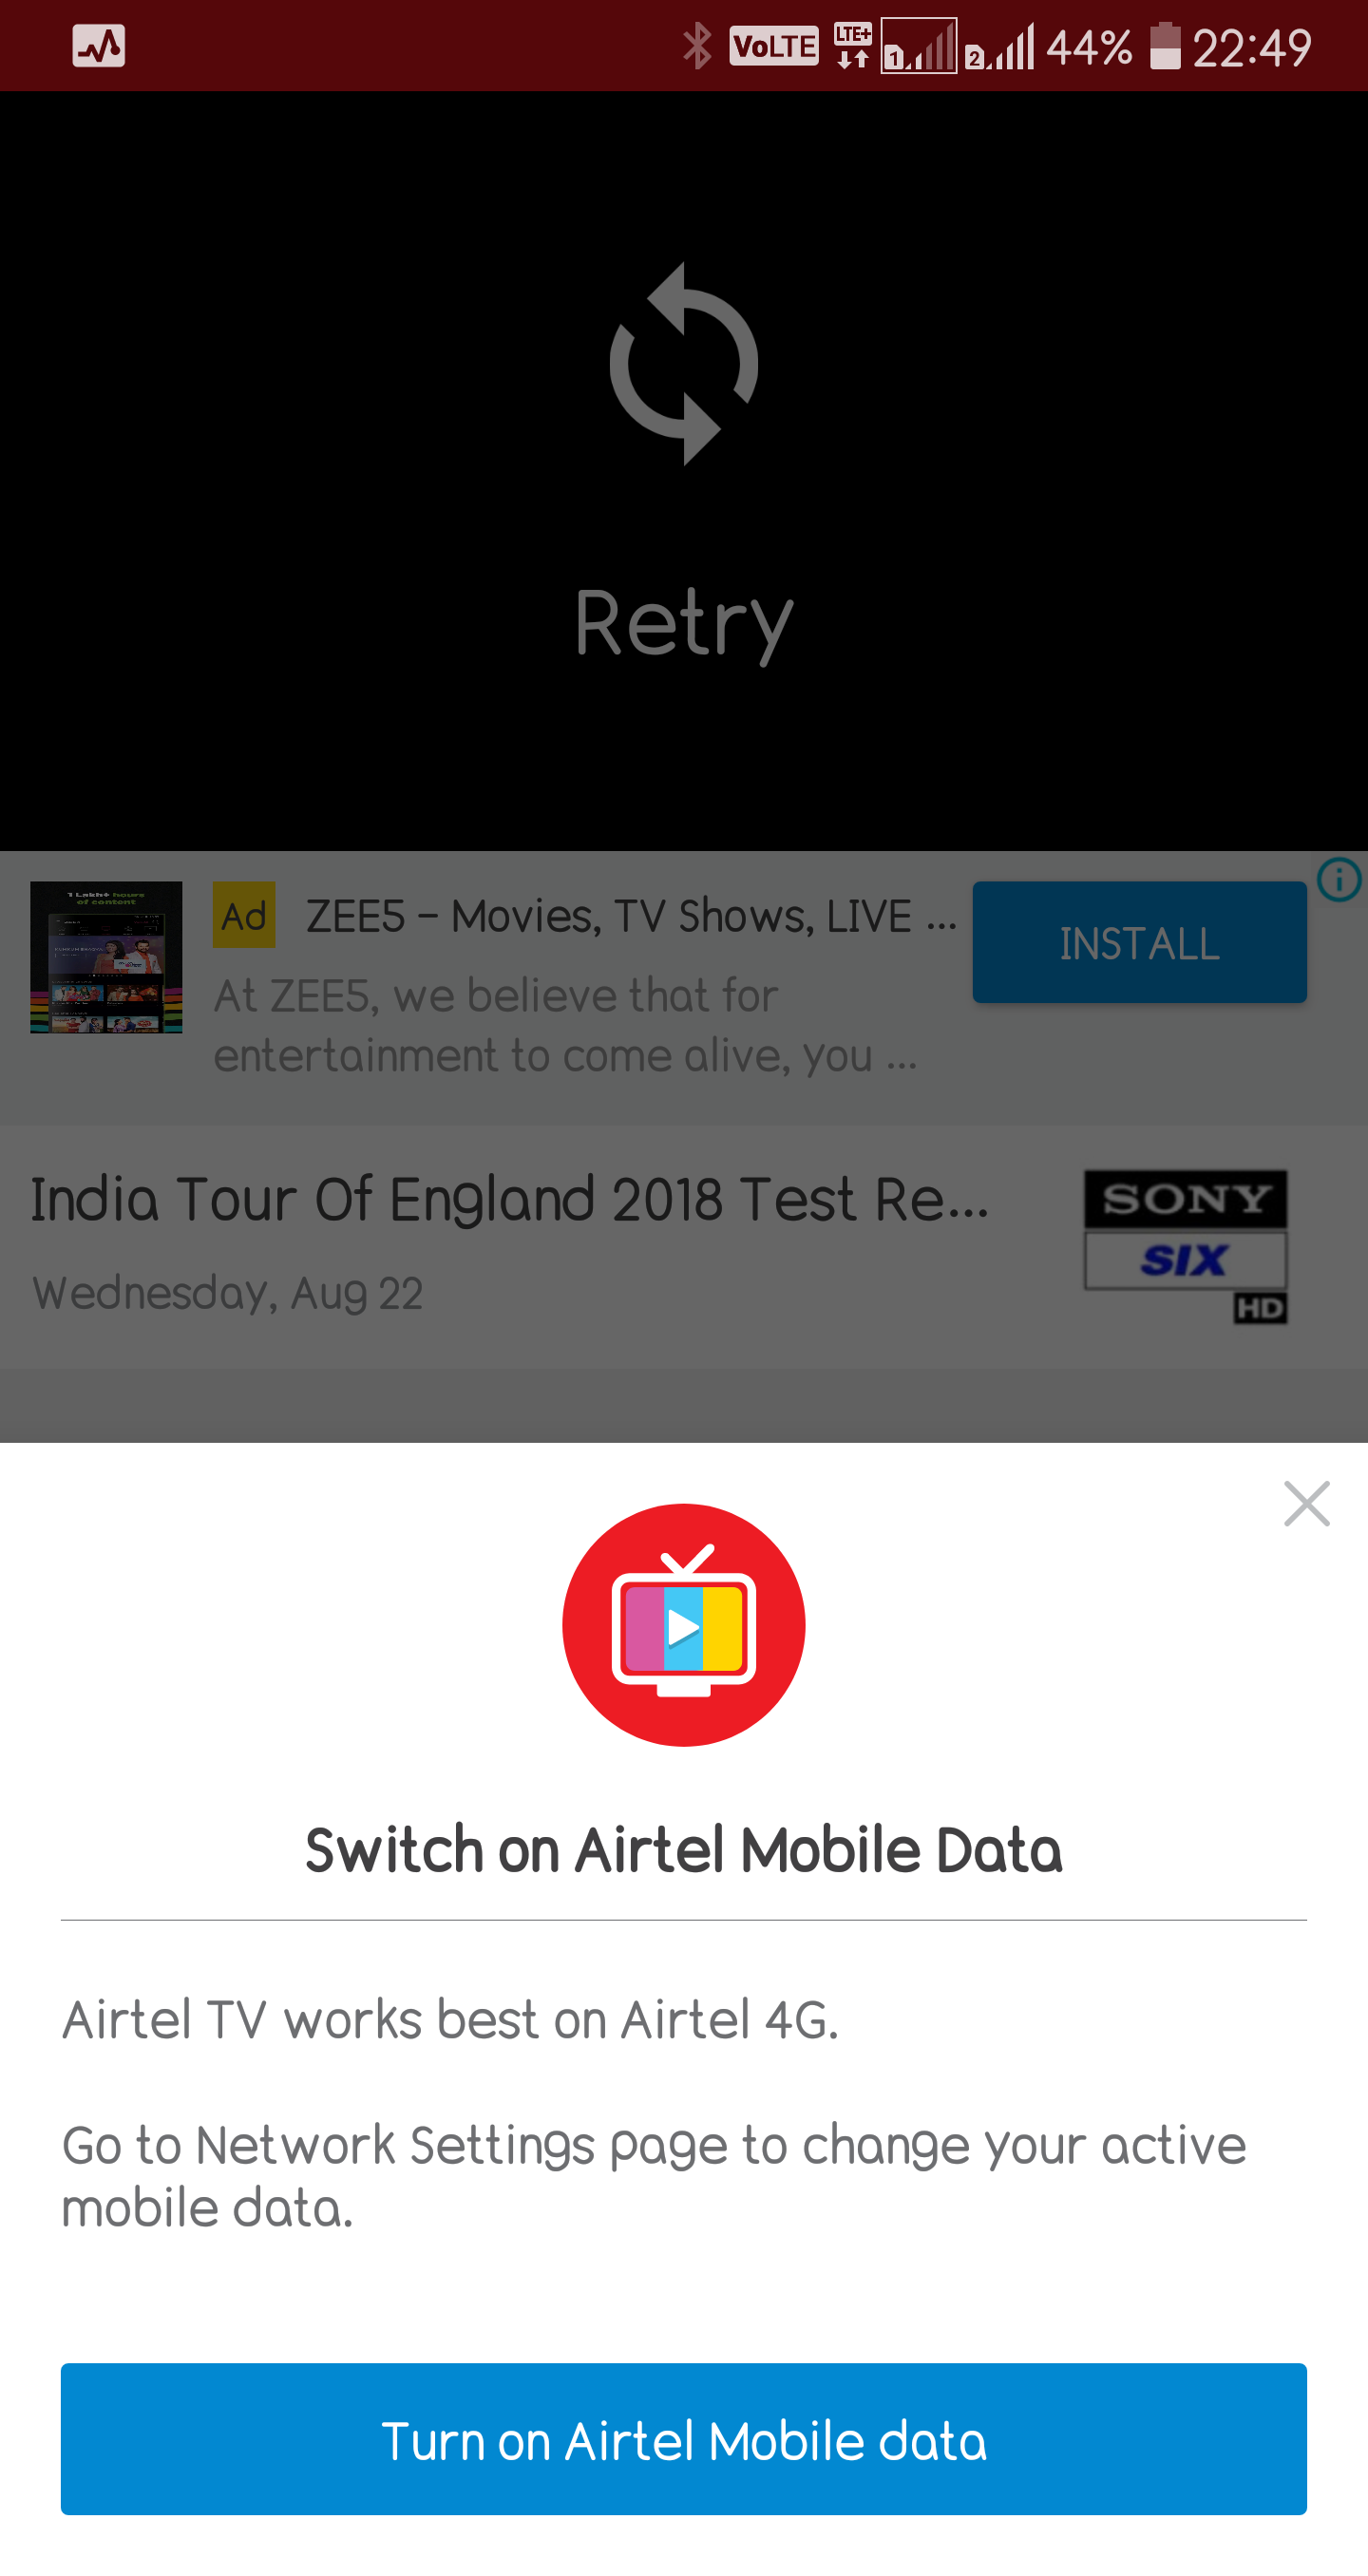 Is Jio denying JioTV access when using the Airtel Internet